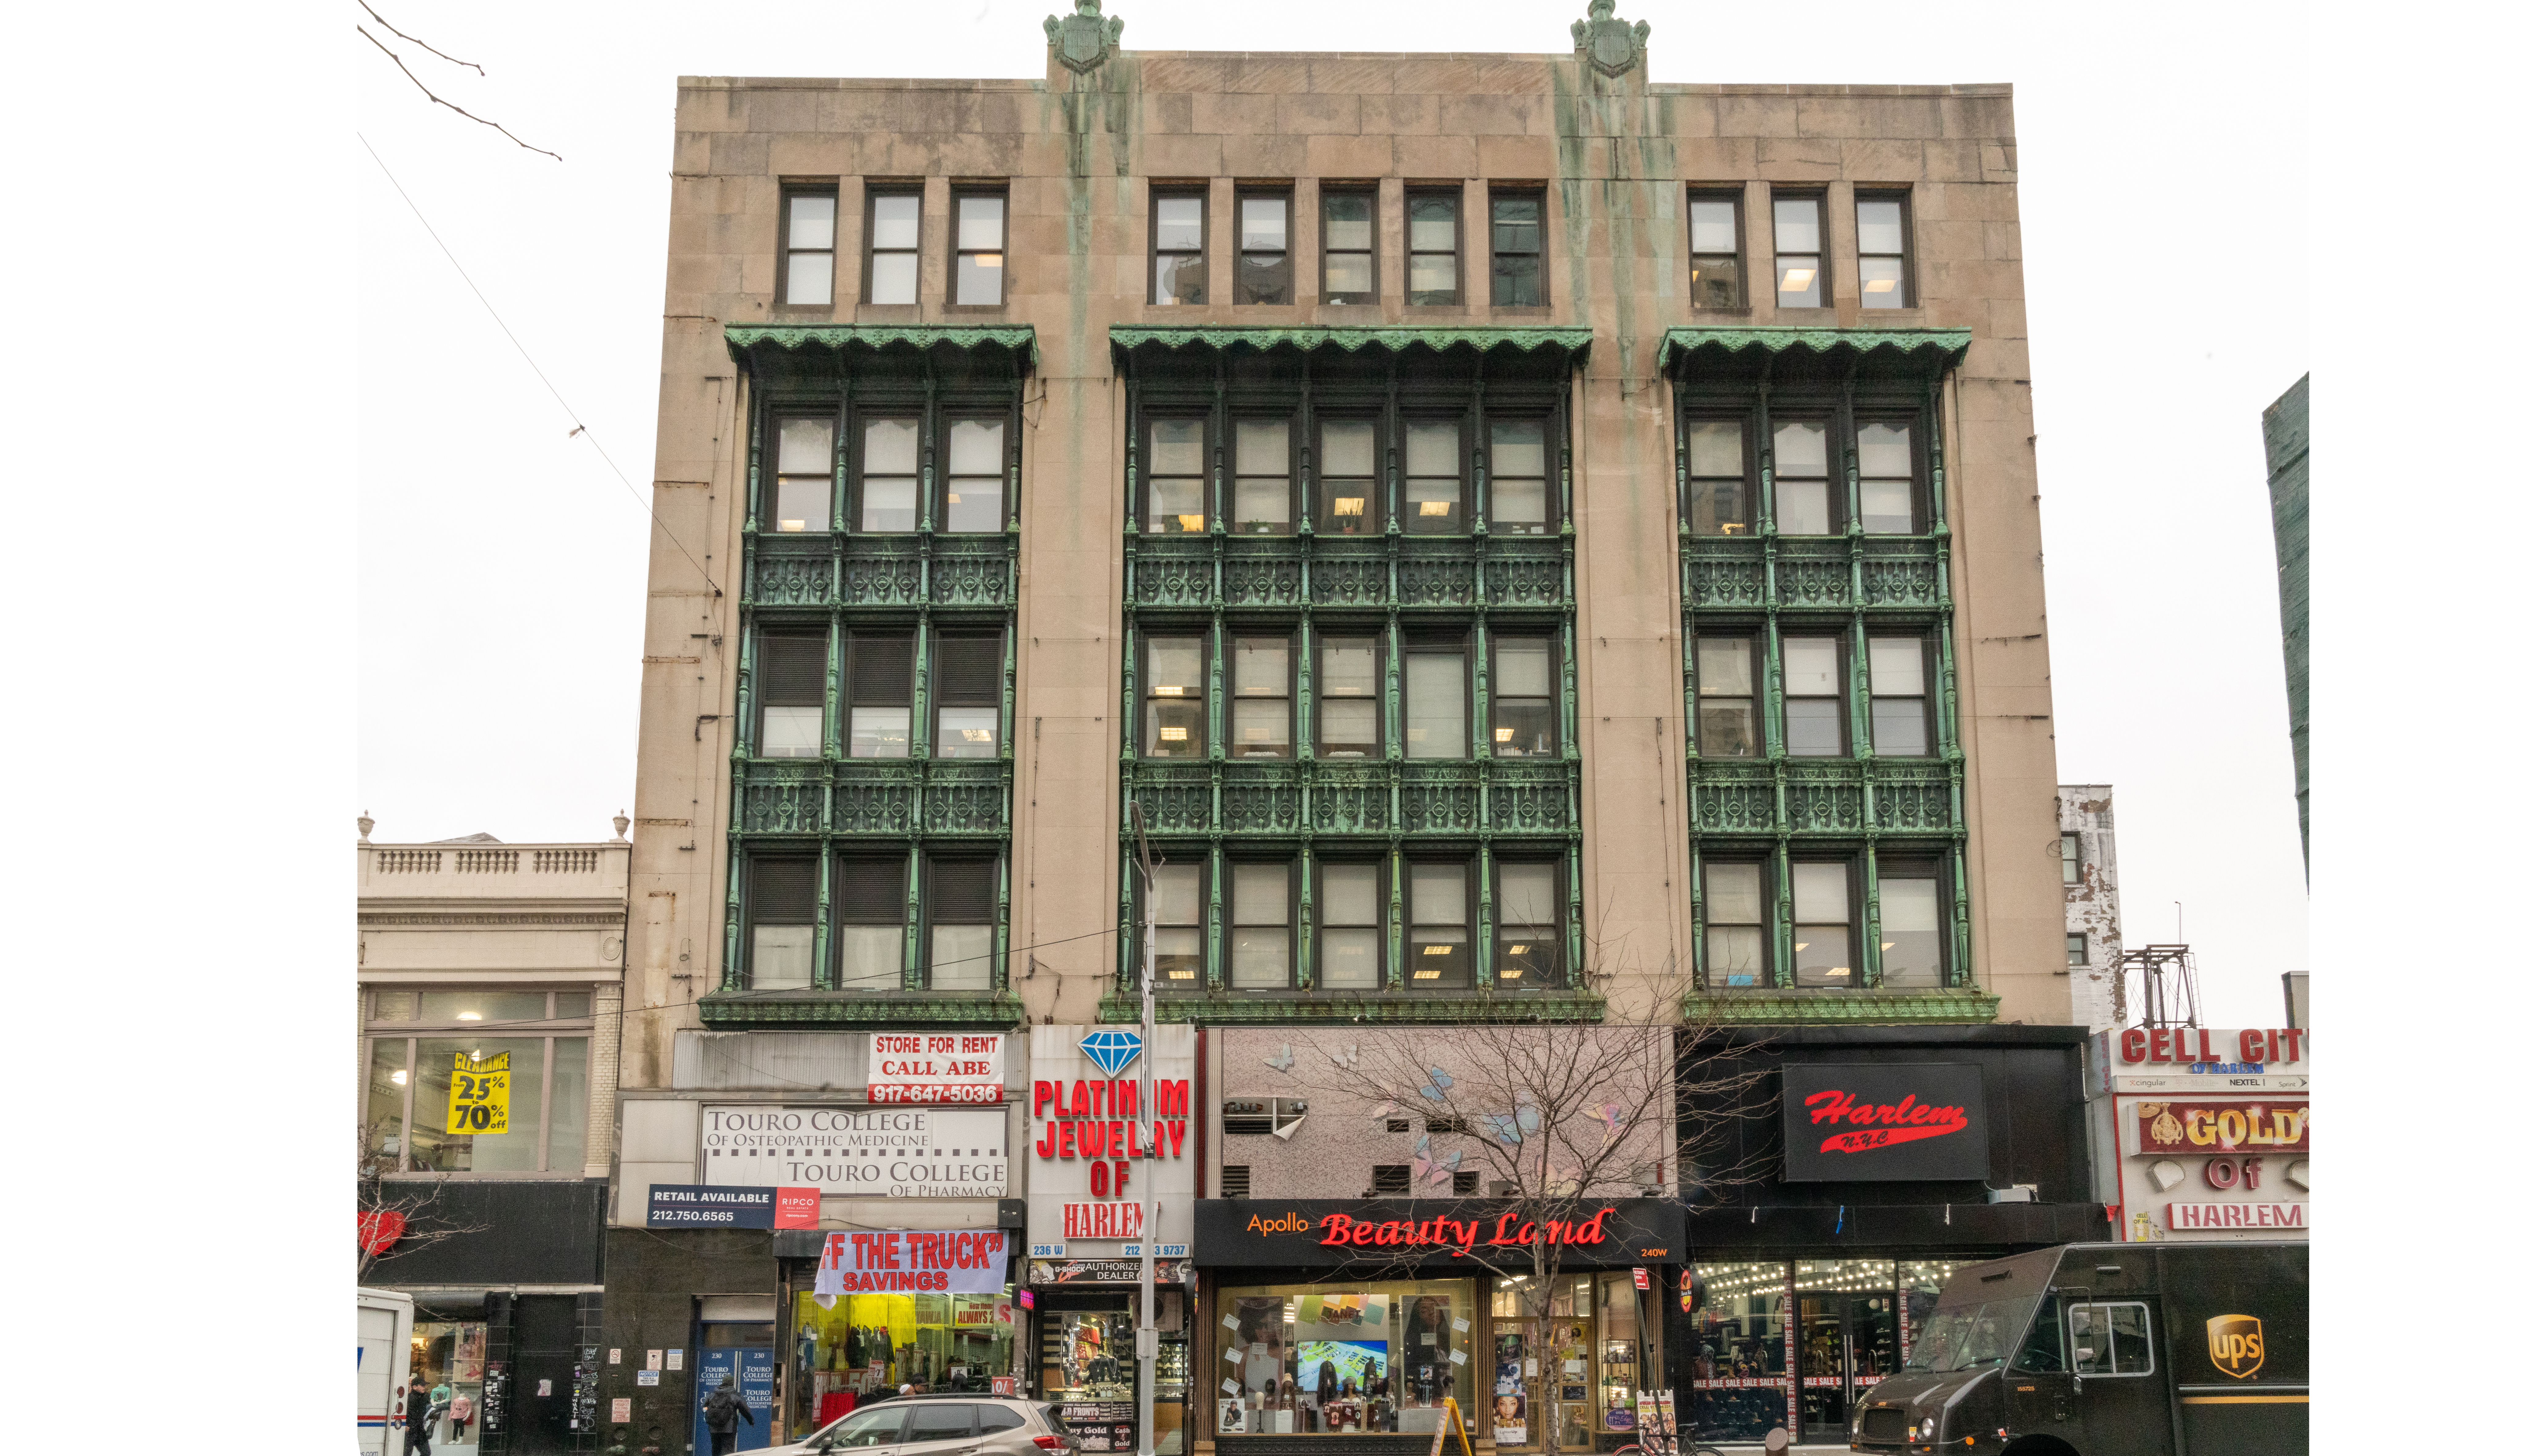 230 West 125th Street the once site of Blumstein's Dept Store on January 13, 2019 in New York City. The site of Blumstein's Dept Store was a flash point in the early Civil Rights Movement